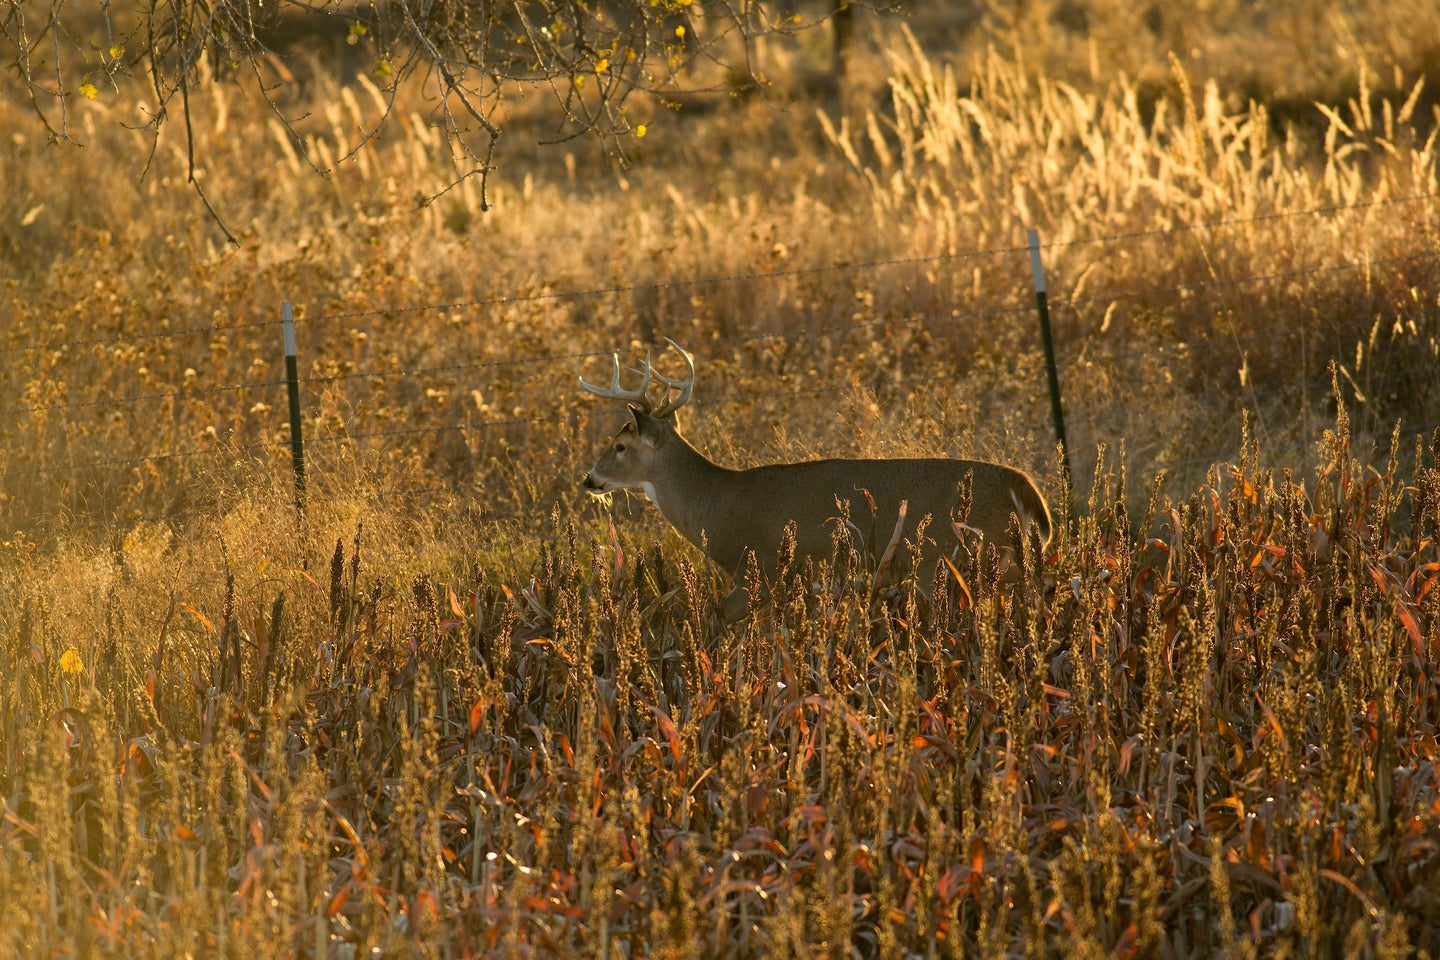 whitetail buck walking alongside a barbed wire fence during golden hour